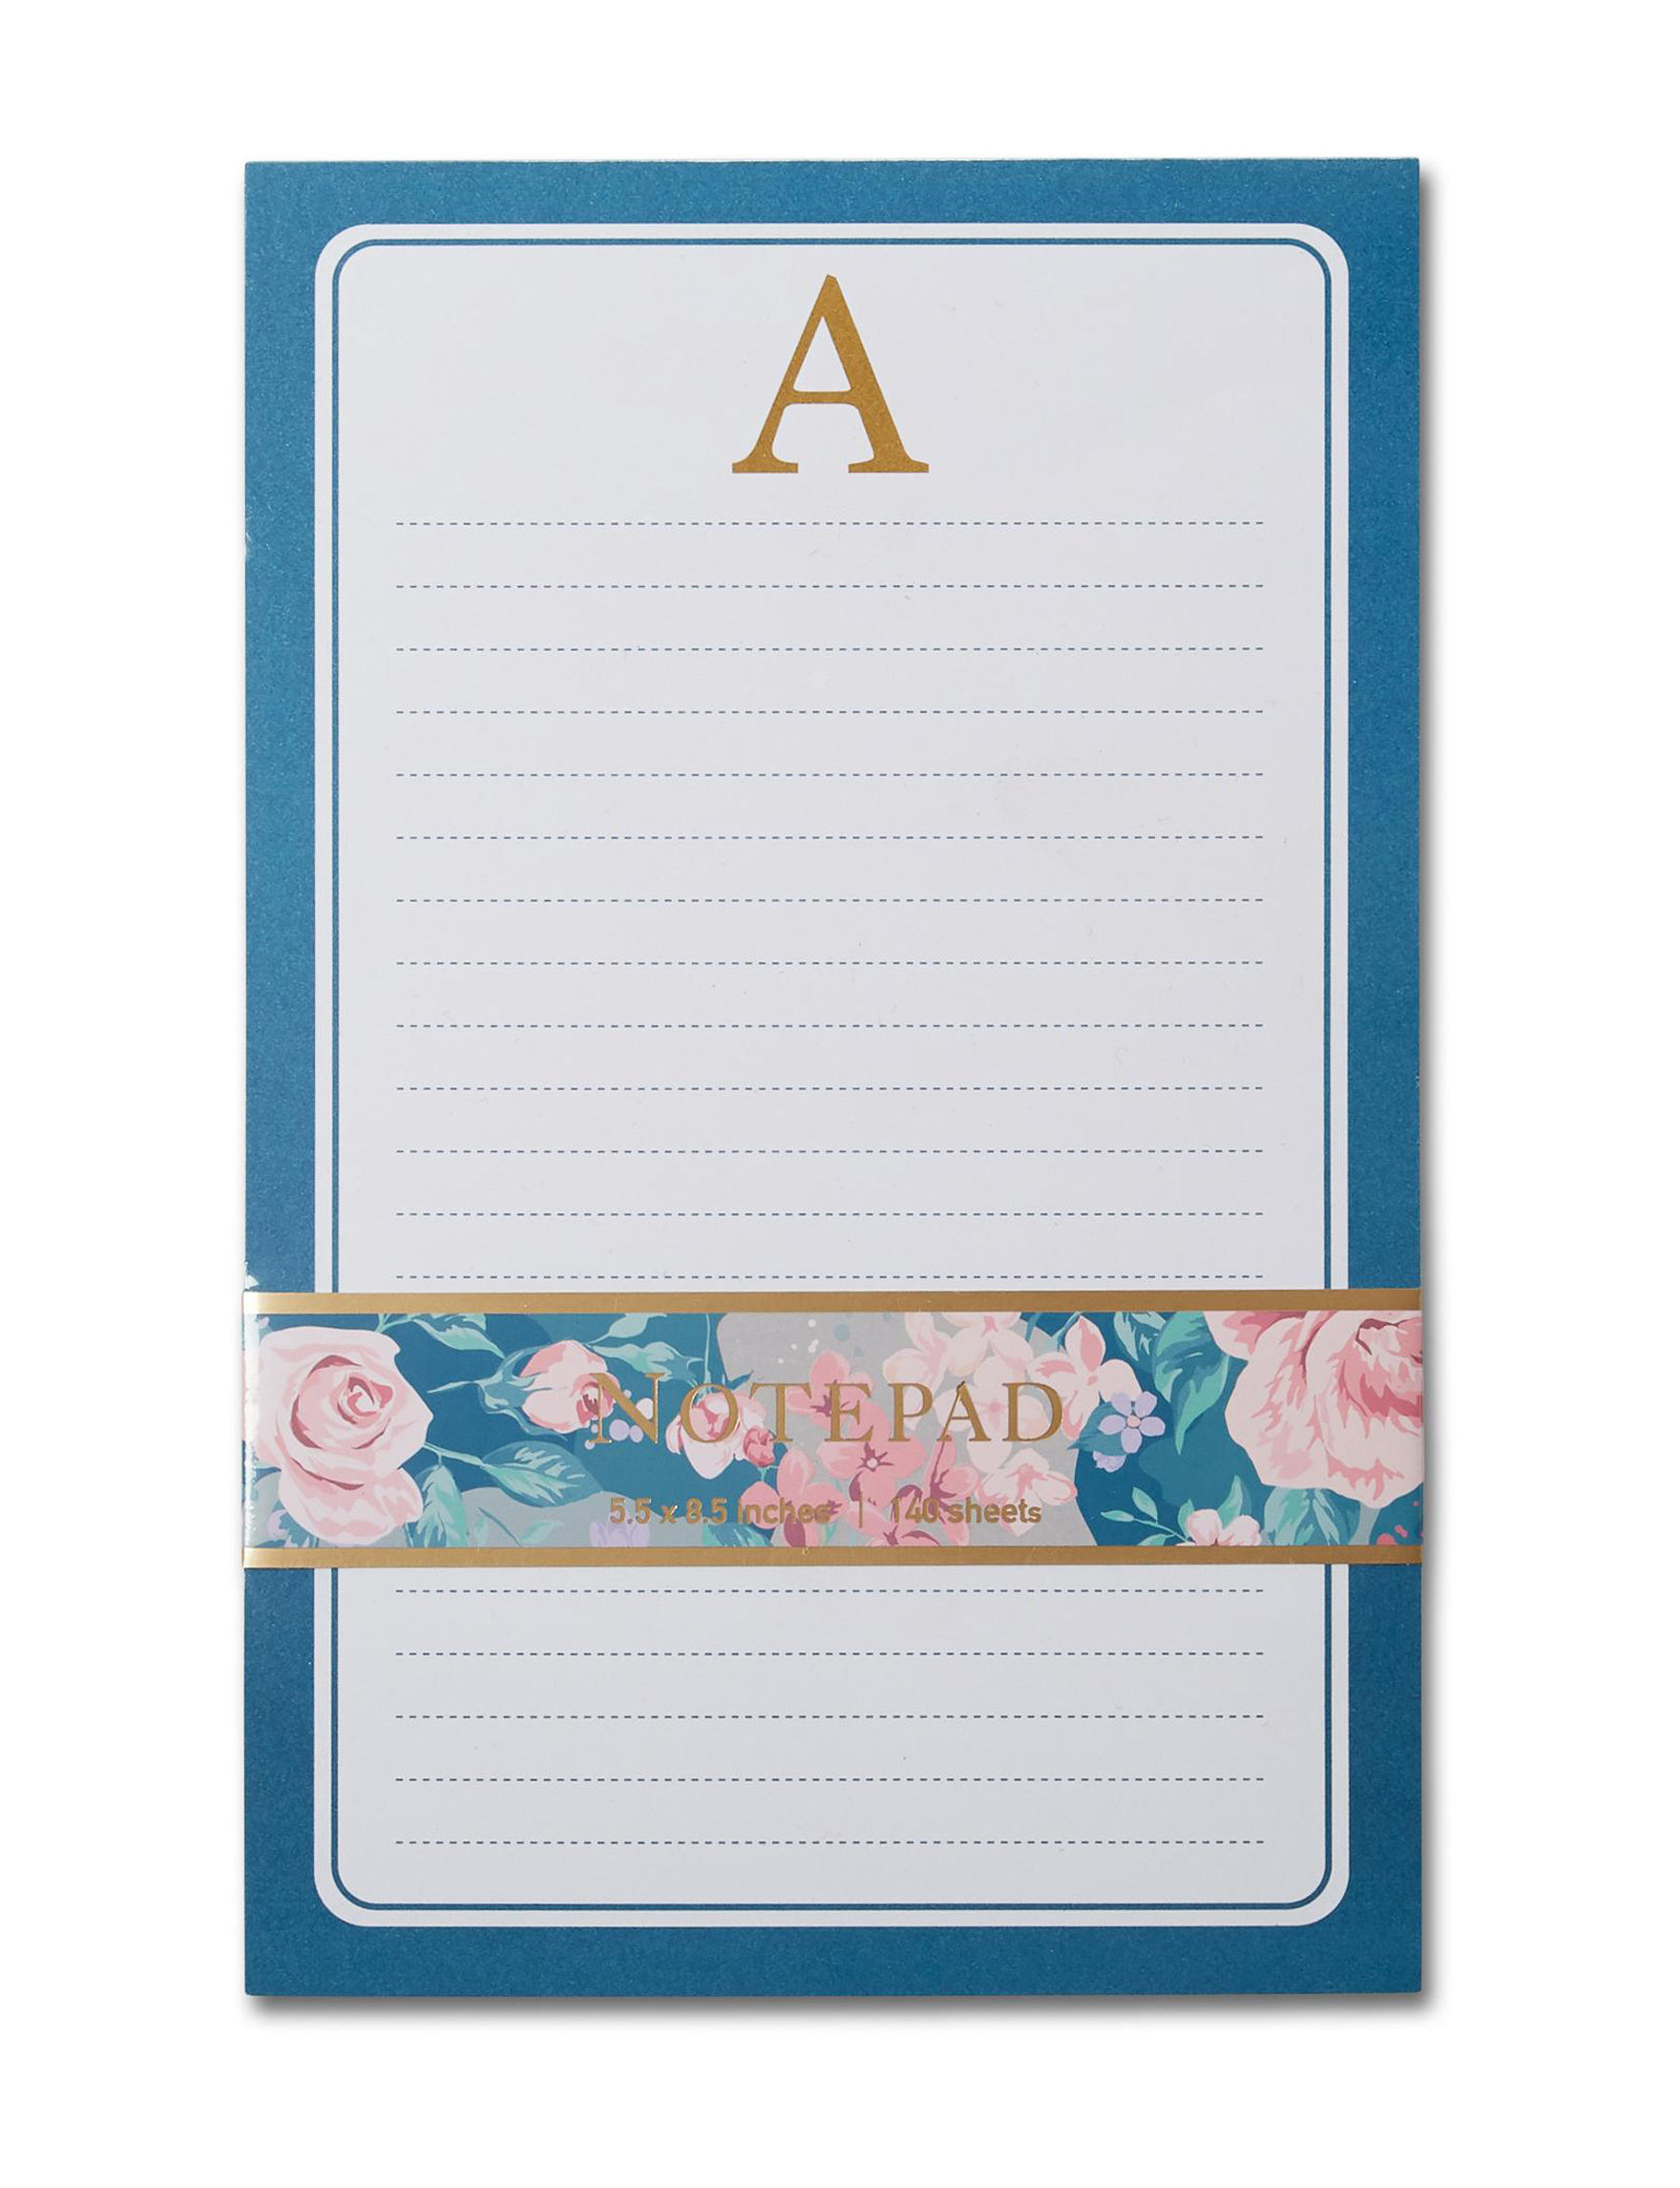 Tri Coastal Navy Journals & Notepads Monogram School & Office Supplies